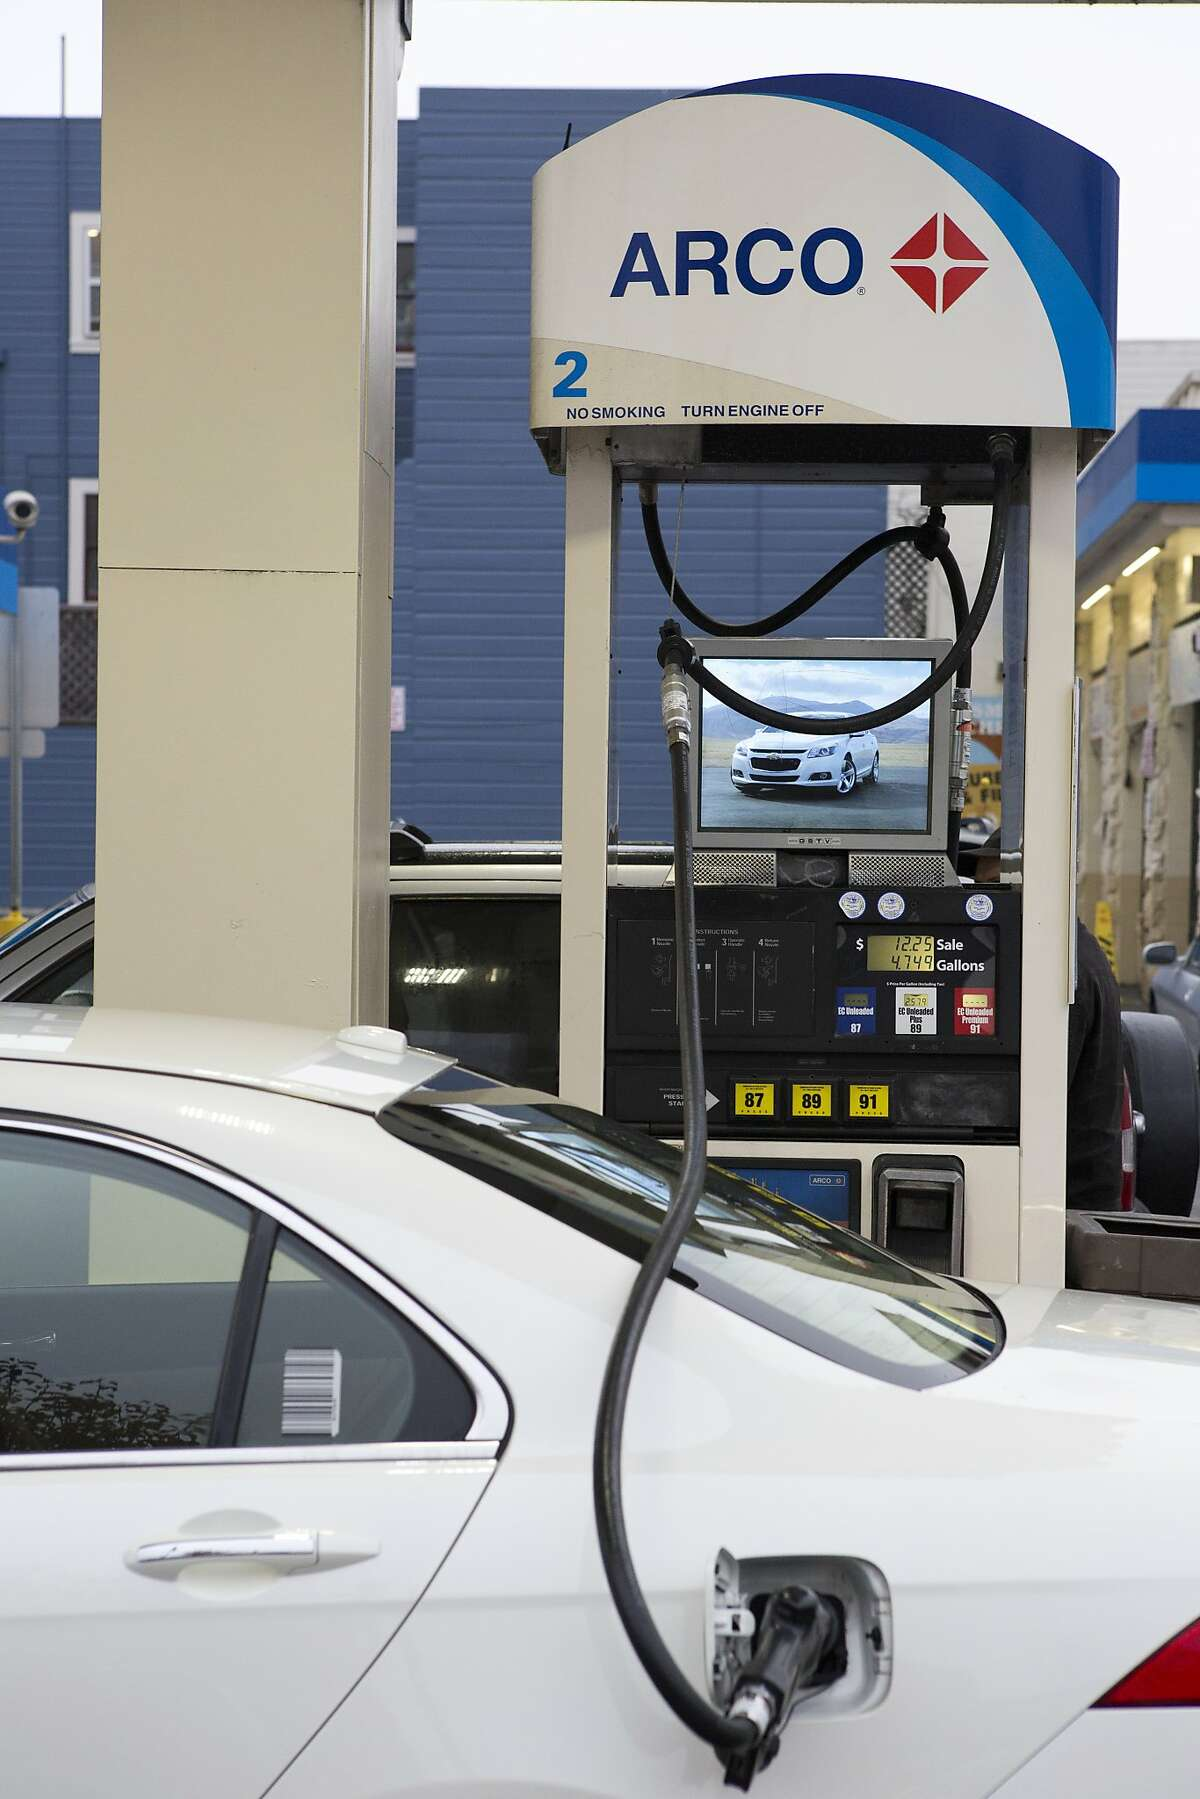 A customers gets gas at Arco on Divisadero St. on January 16, 2015 in San Francisco, Calif.